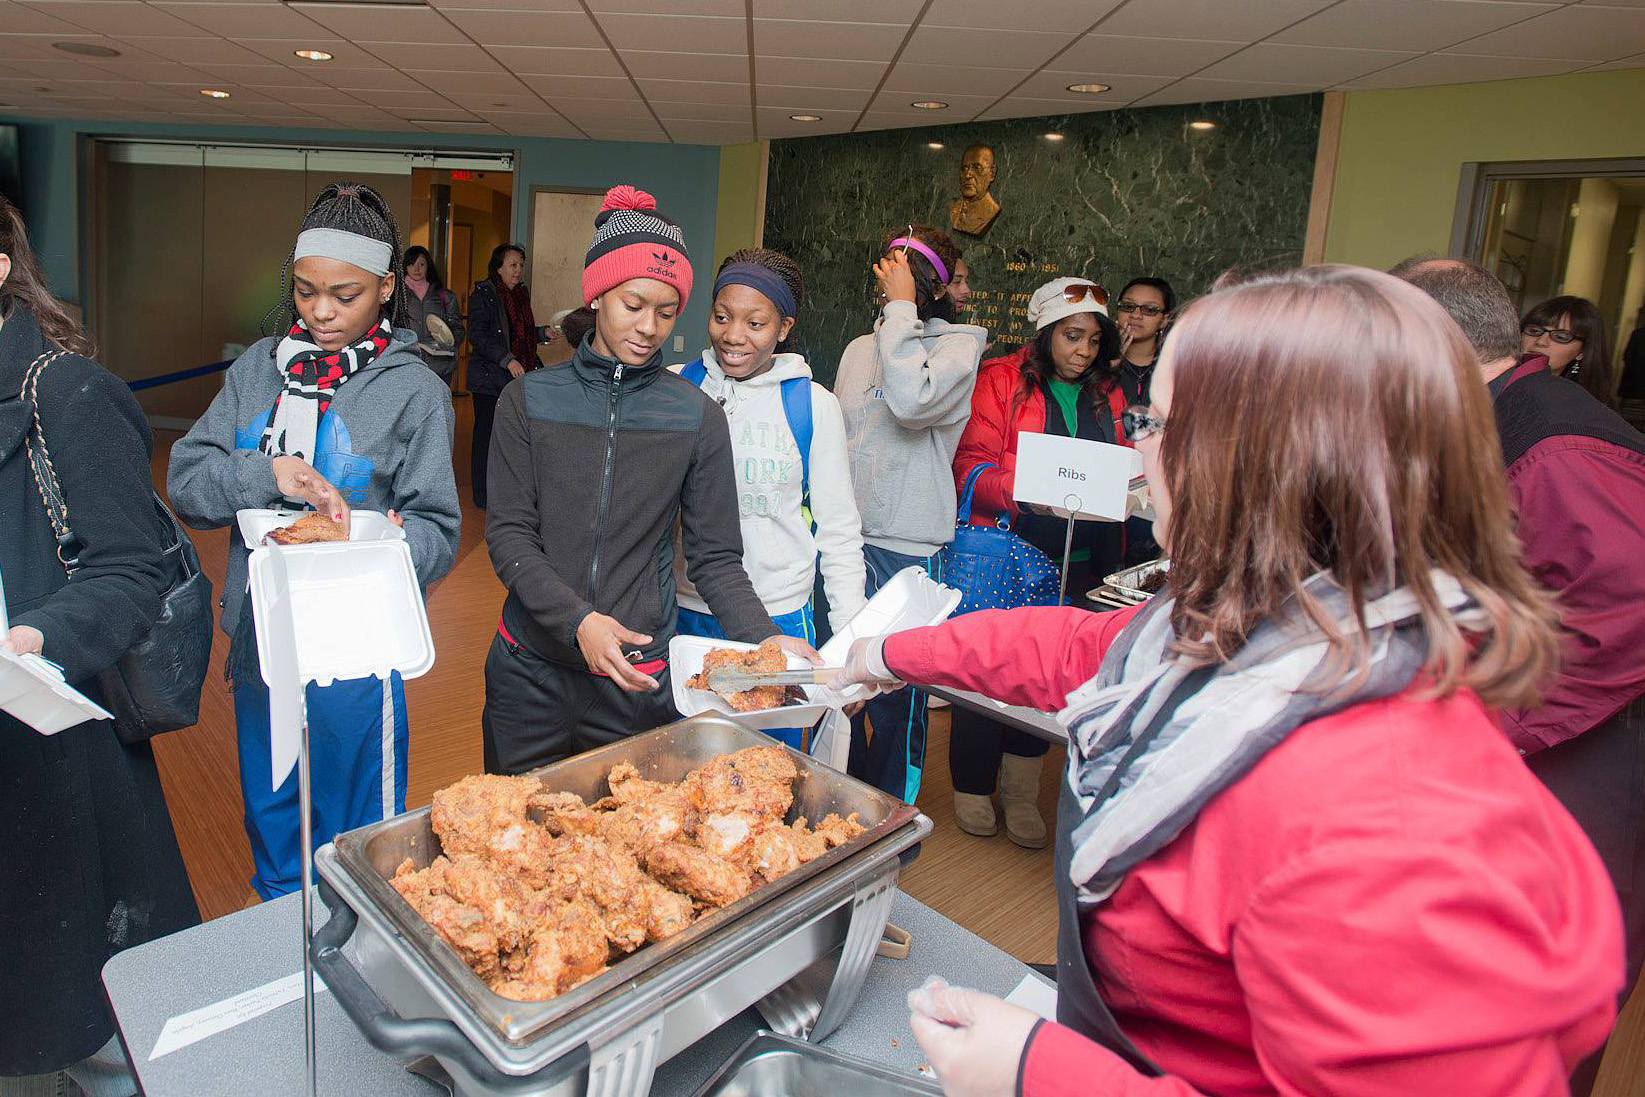 KCC employees serve students food during one of the College's annual Soul Food Luncheon events on campus.